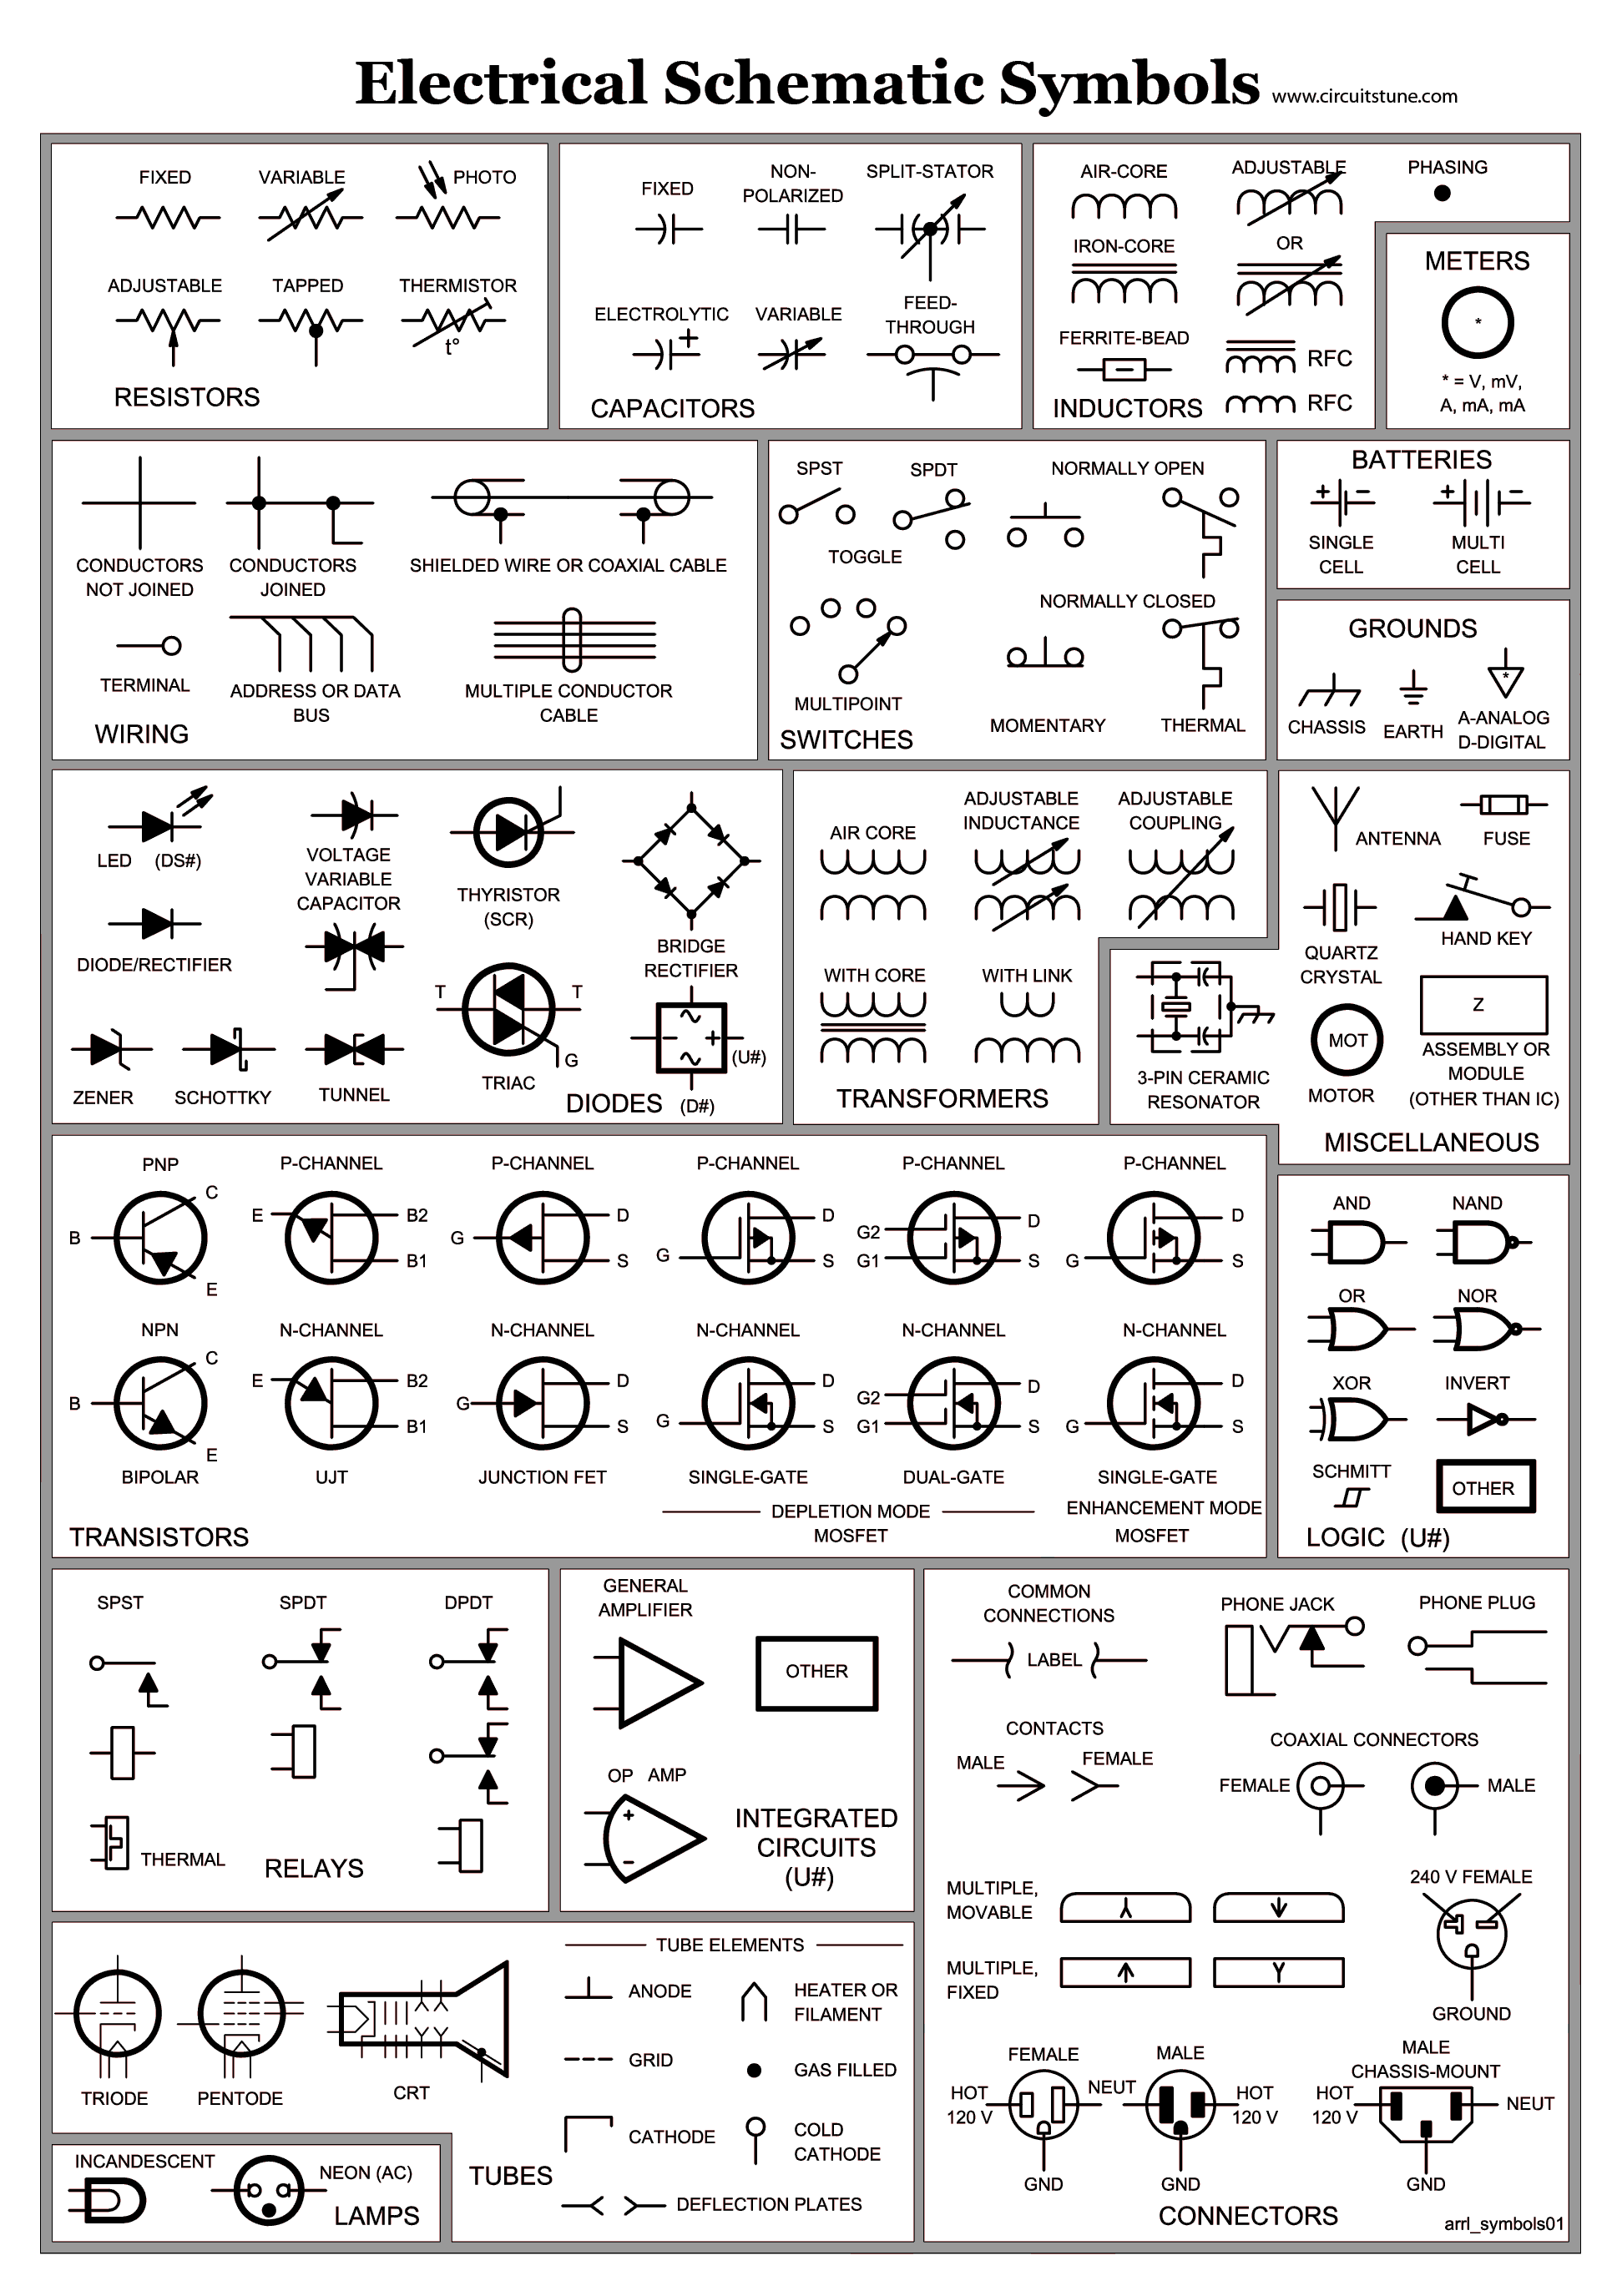 a65d176364692d2ebe913b58a654cfc3 electrical schematic symbols wire diagram symbols automotive wes industries wiring diagram at metegol.co